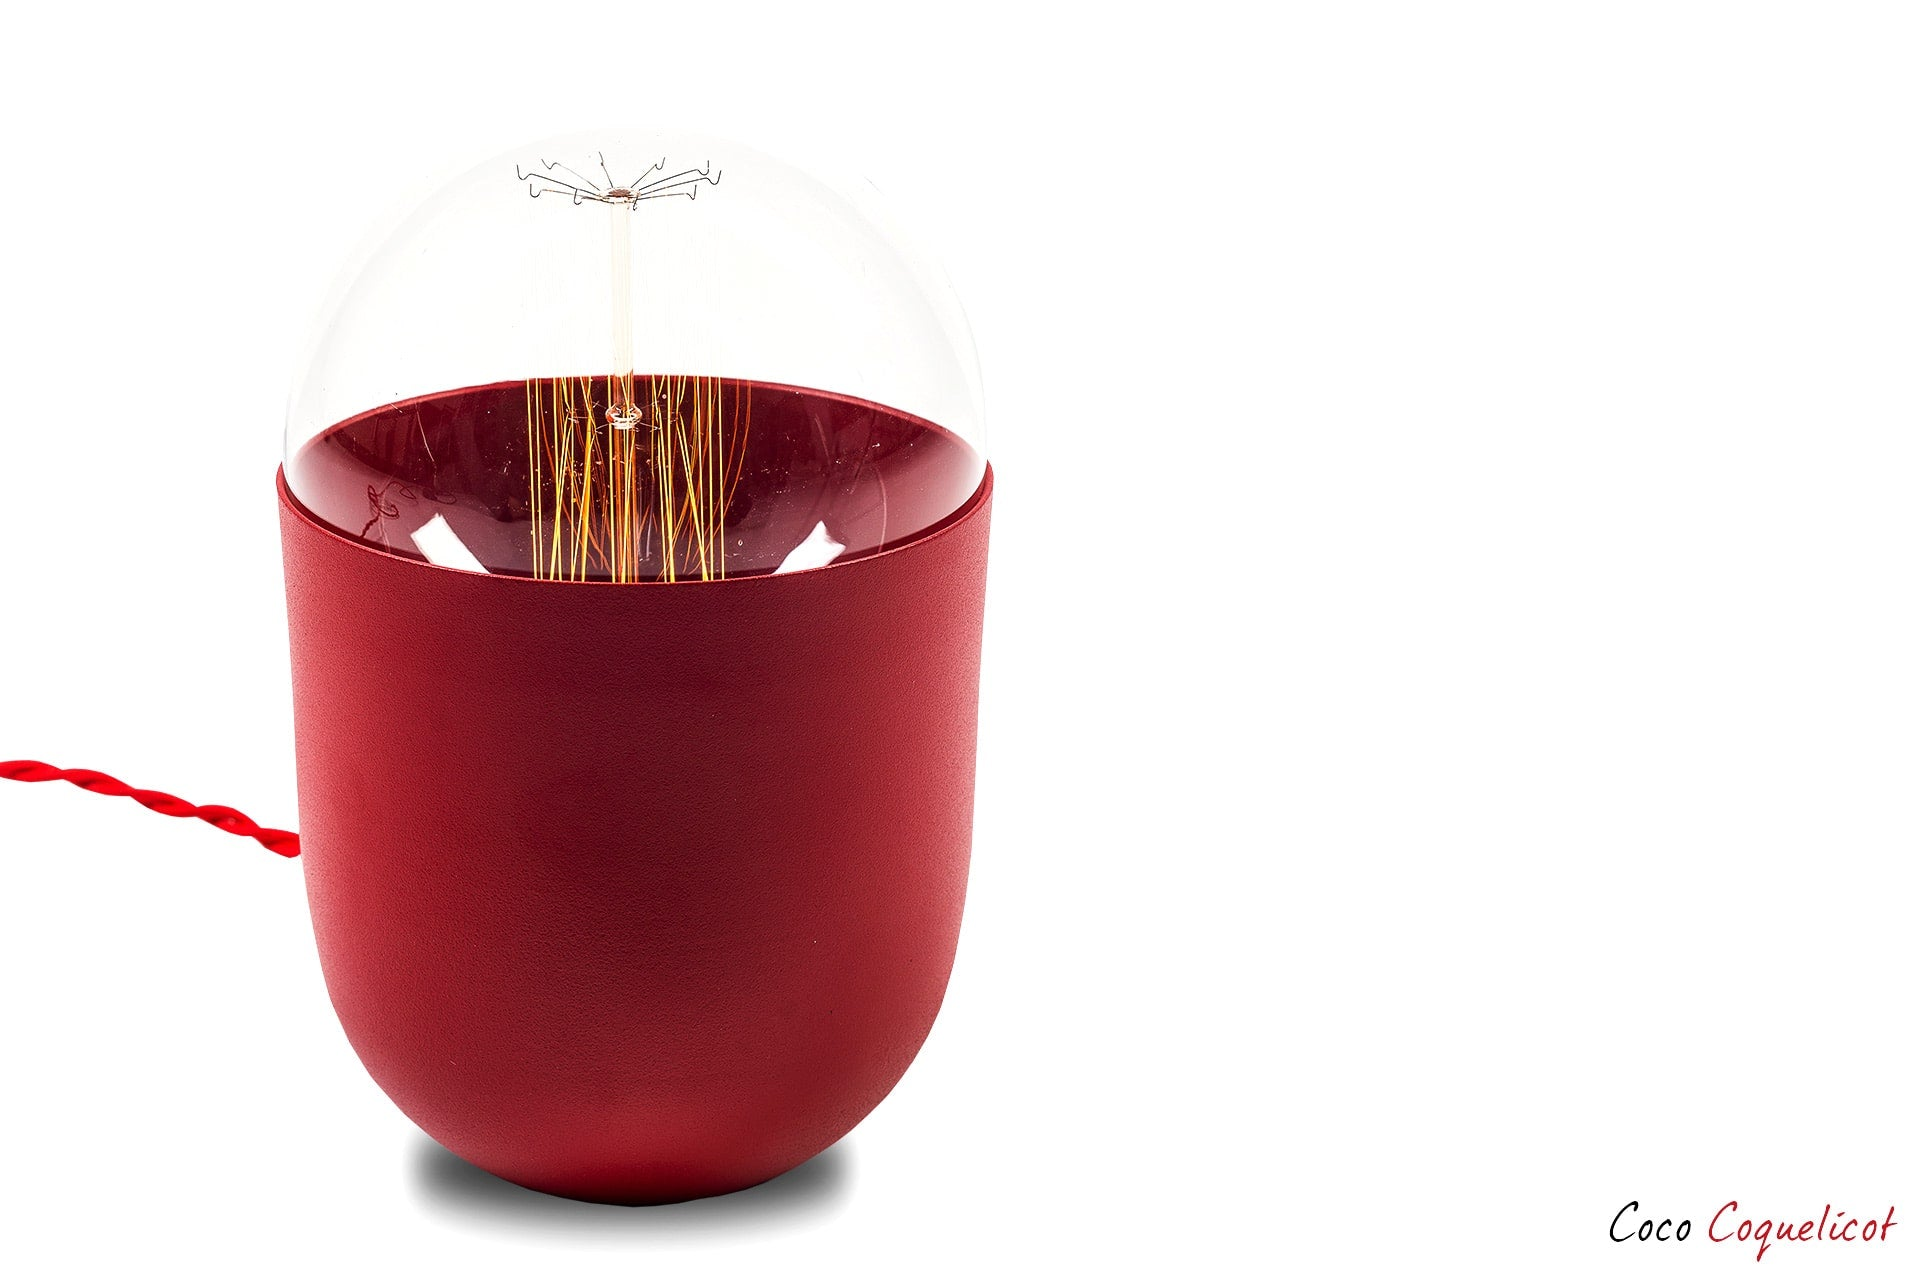 lampe de table Coco couleur rouge coquelicot by Mickaël Koska-en vente sur PARIDEO design durable